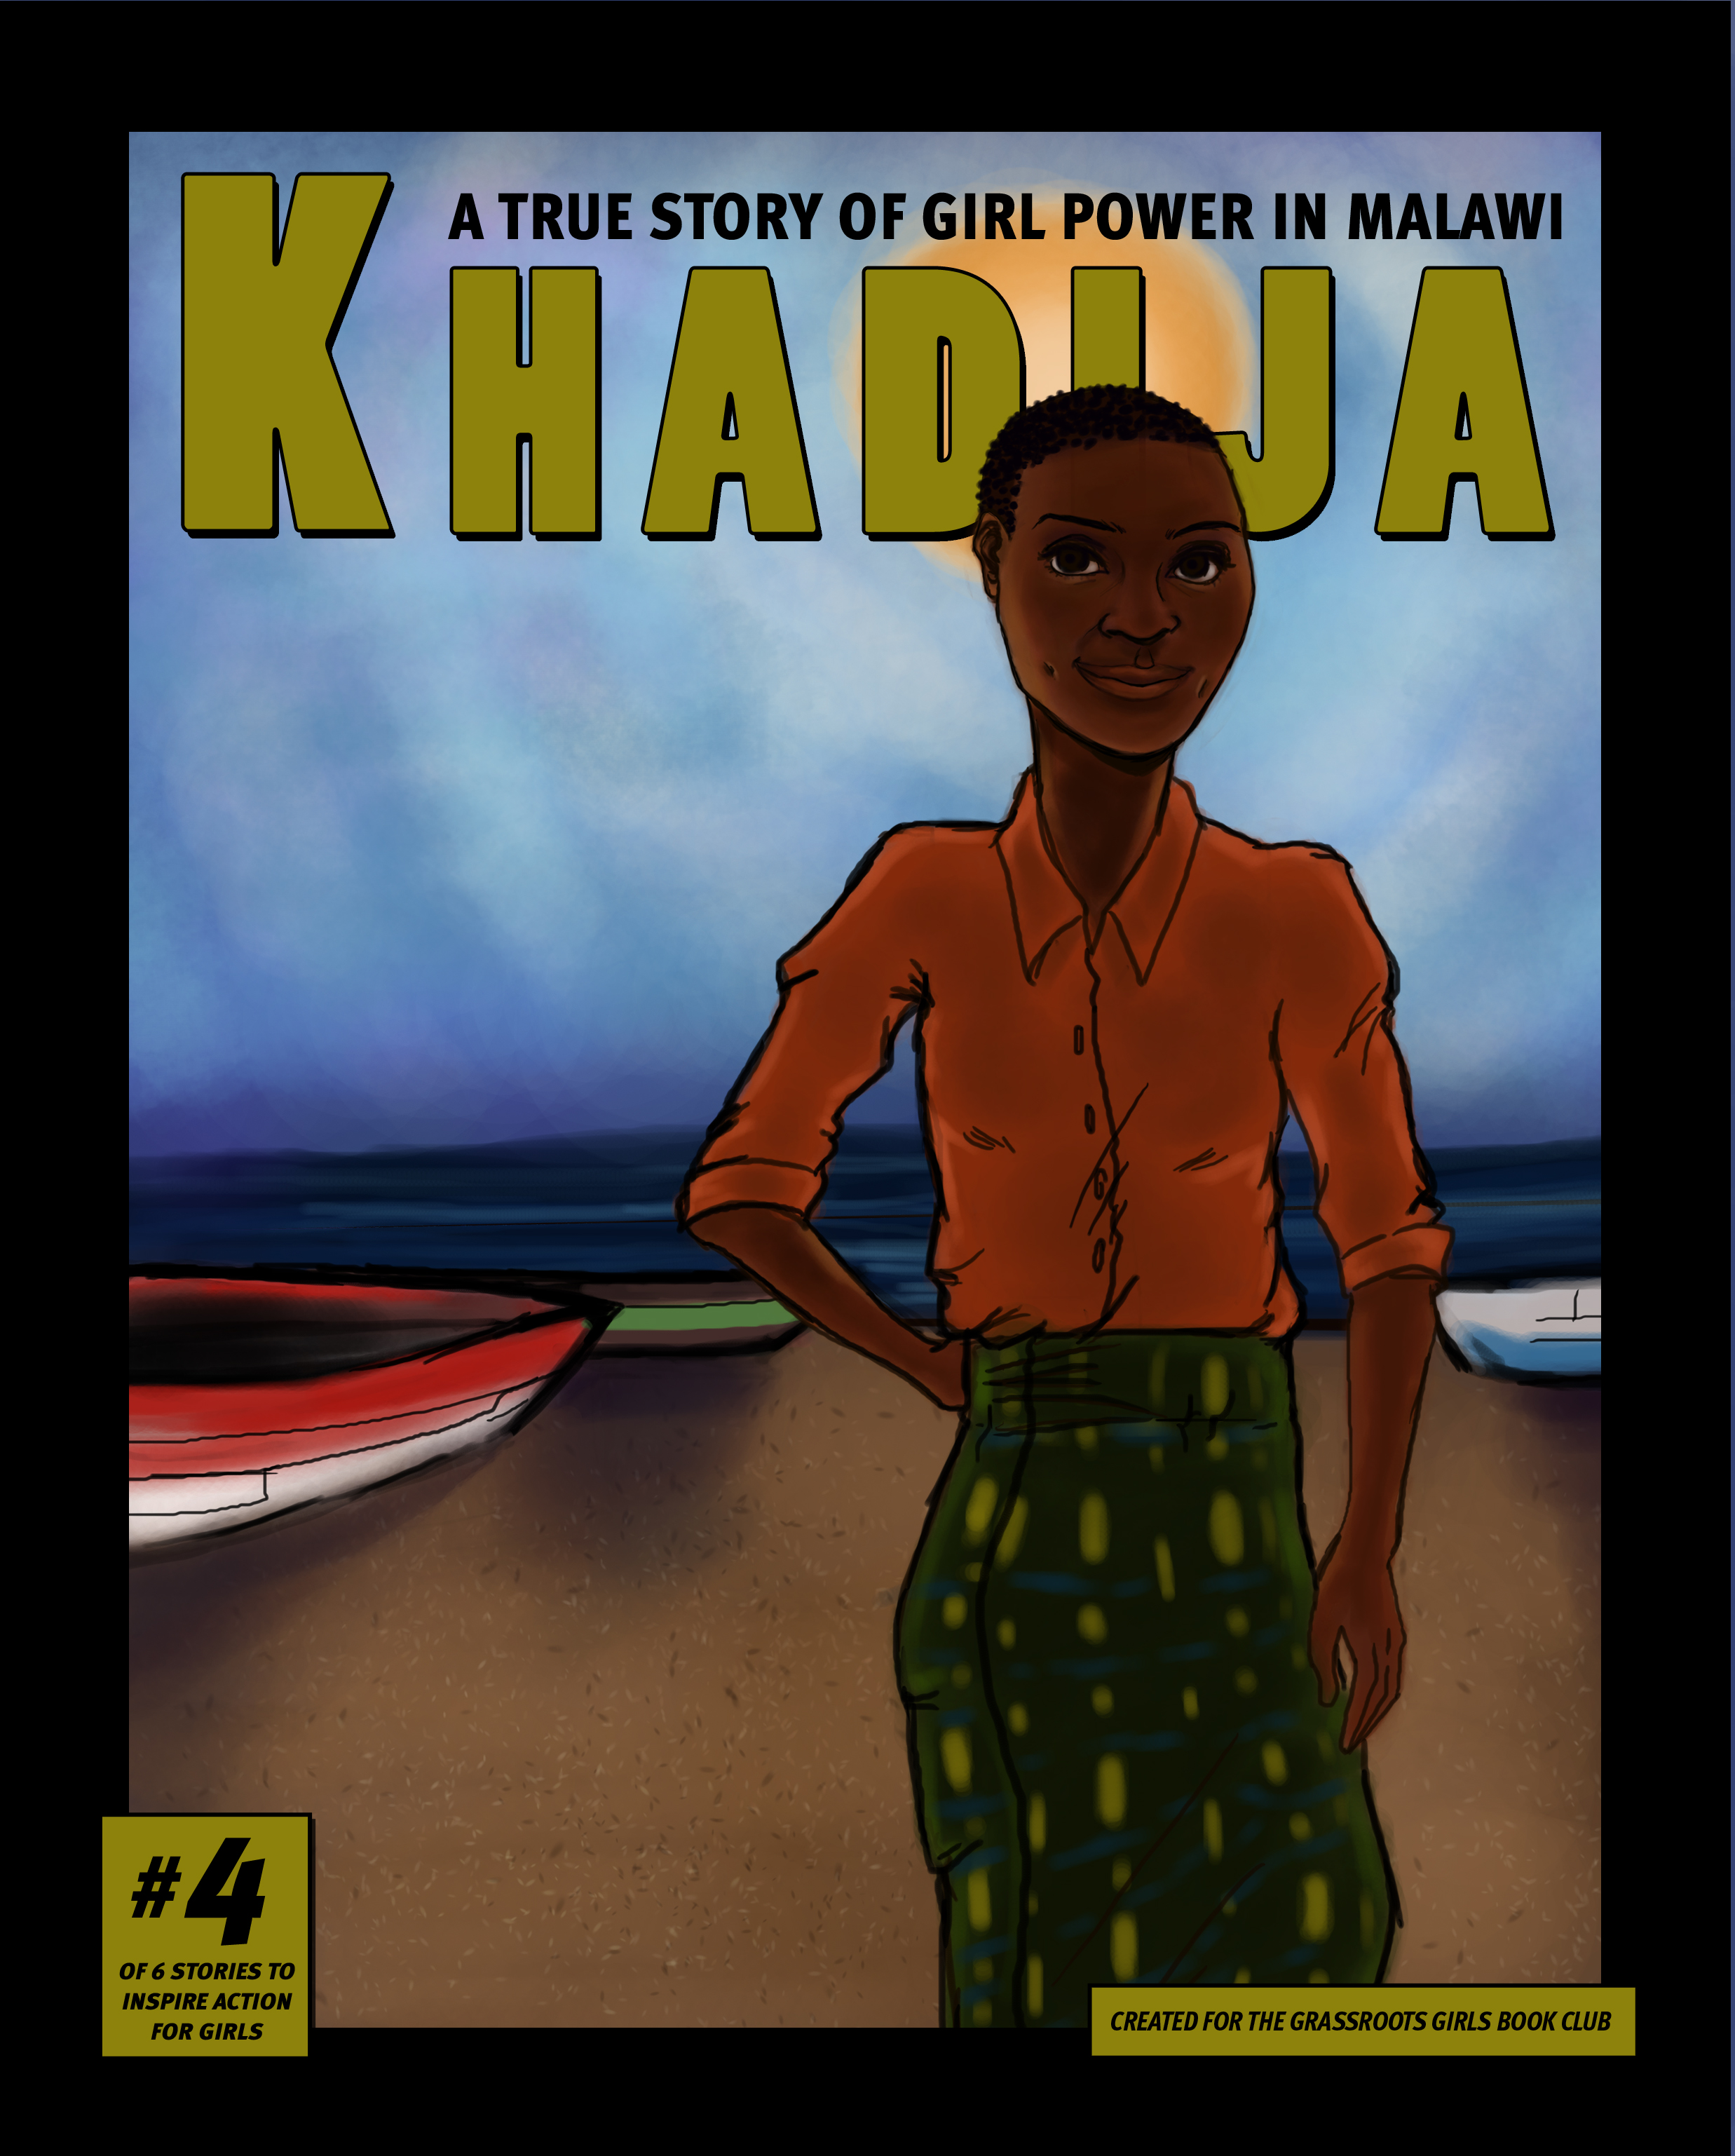 a graphic novel cover of an African girl going places